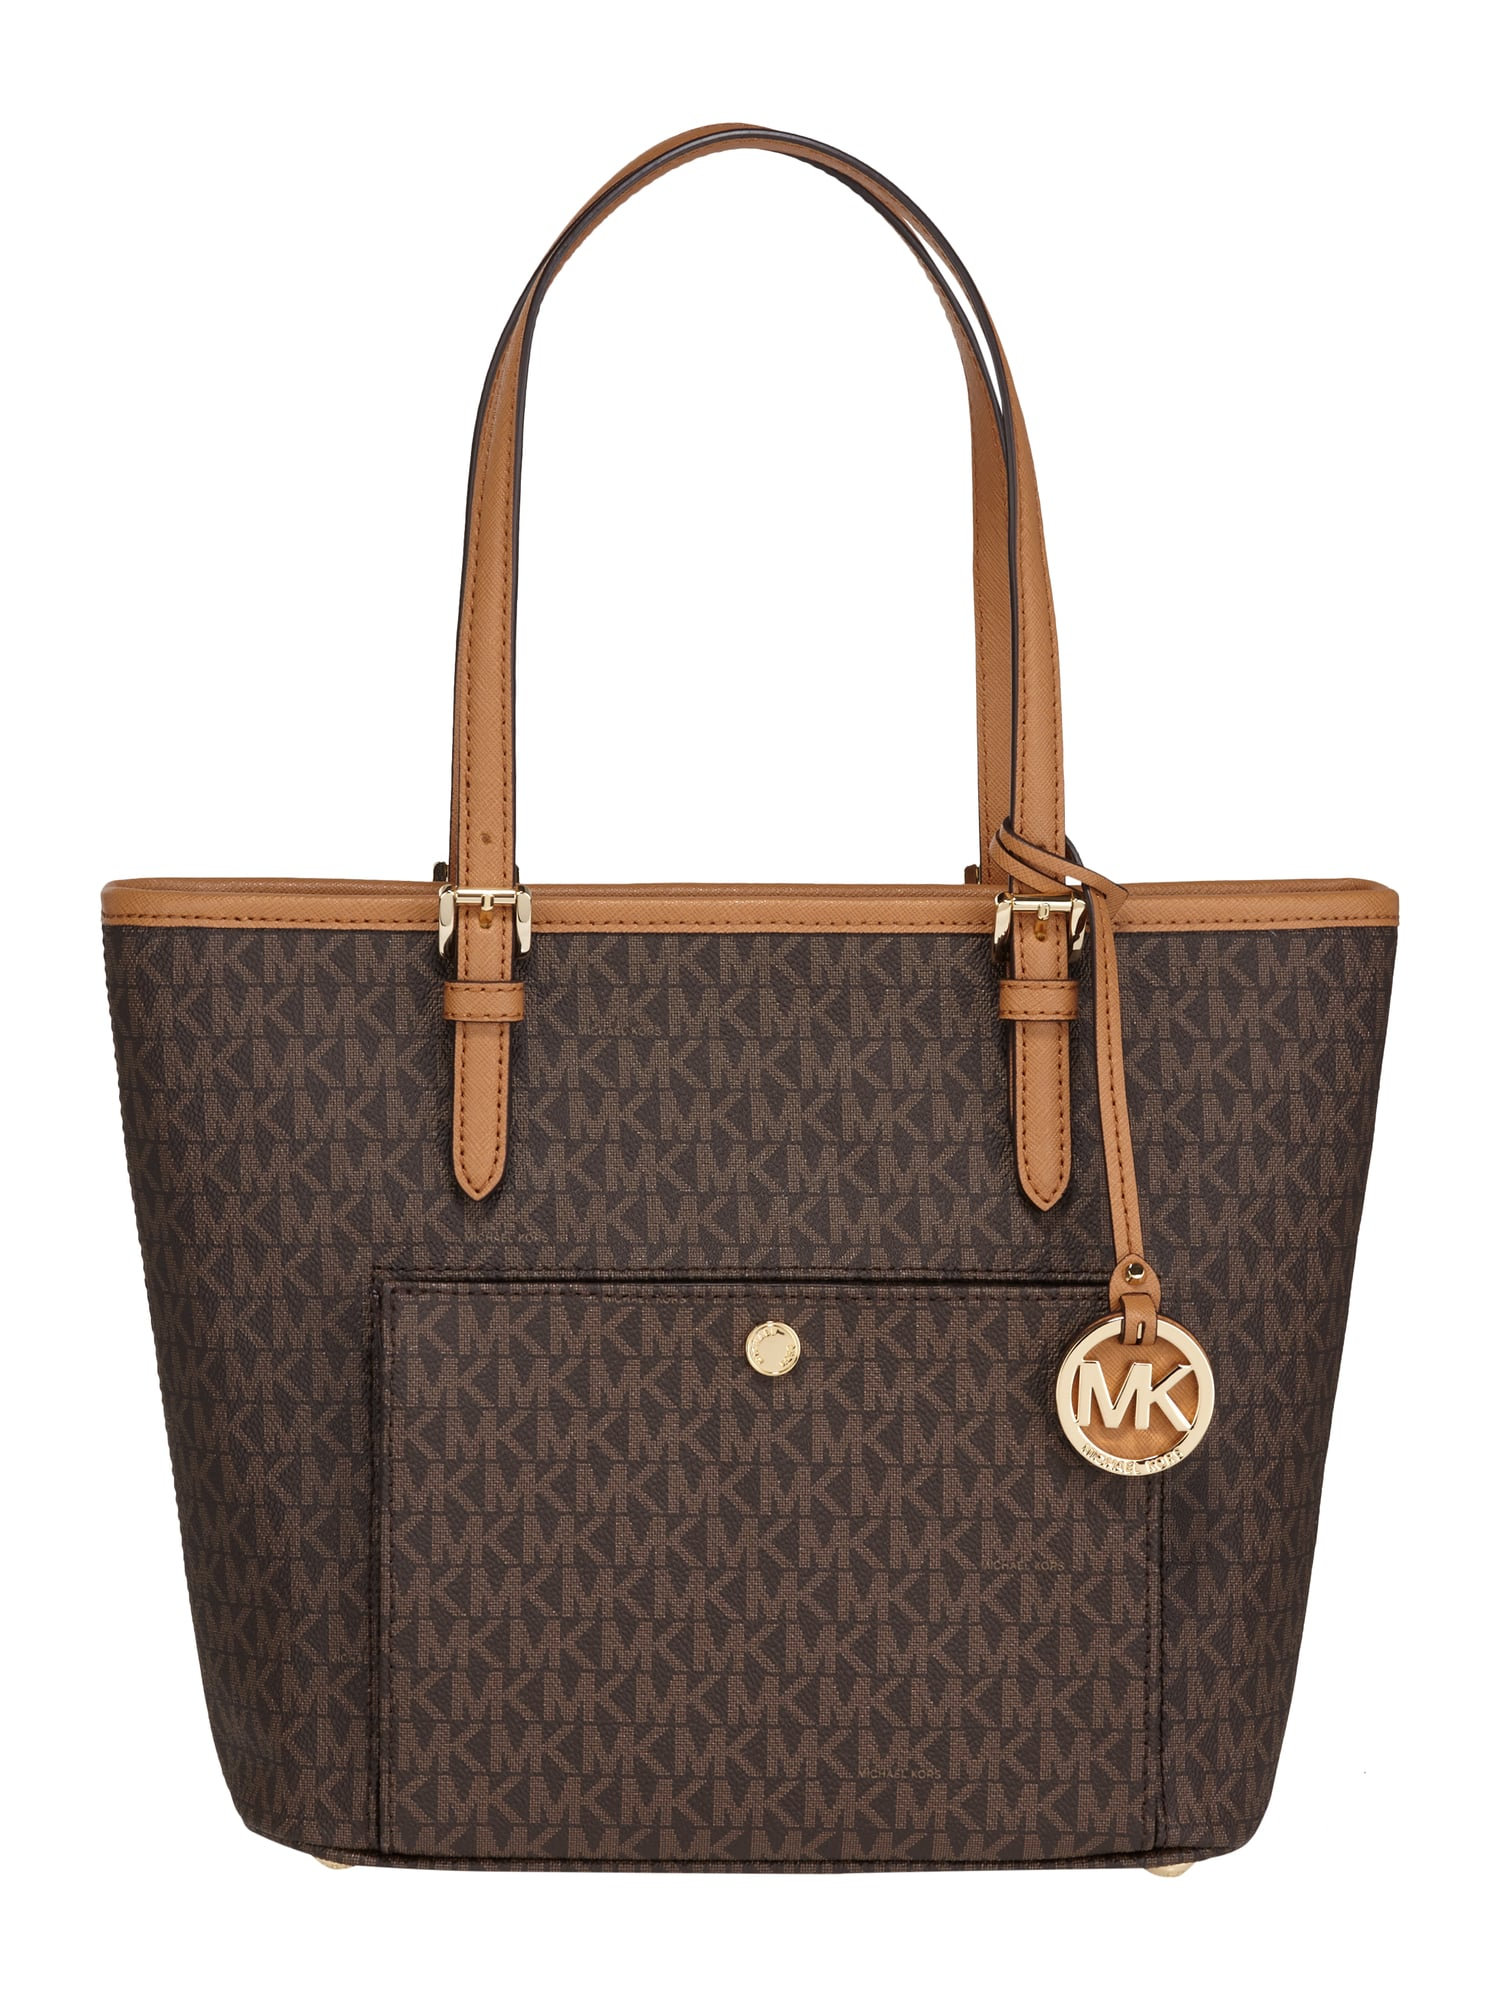 michael michael kors handtasche mit logo muster in braun online kaufen 9732898 p c online shop. Black Bedroom Furniture Sets. Home Design Ideas